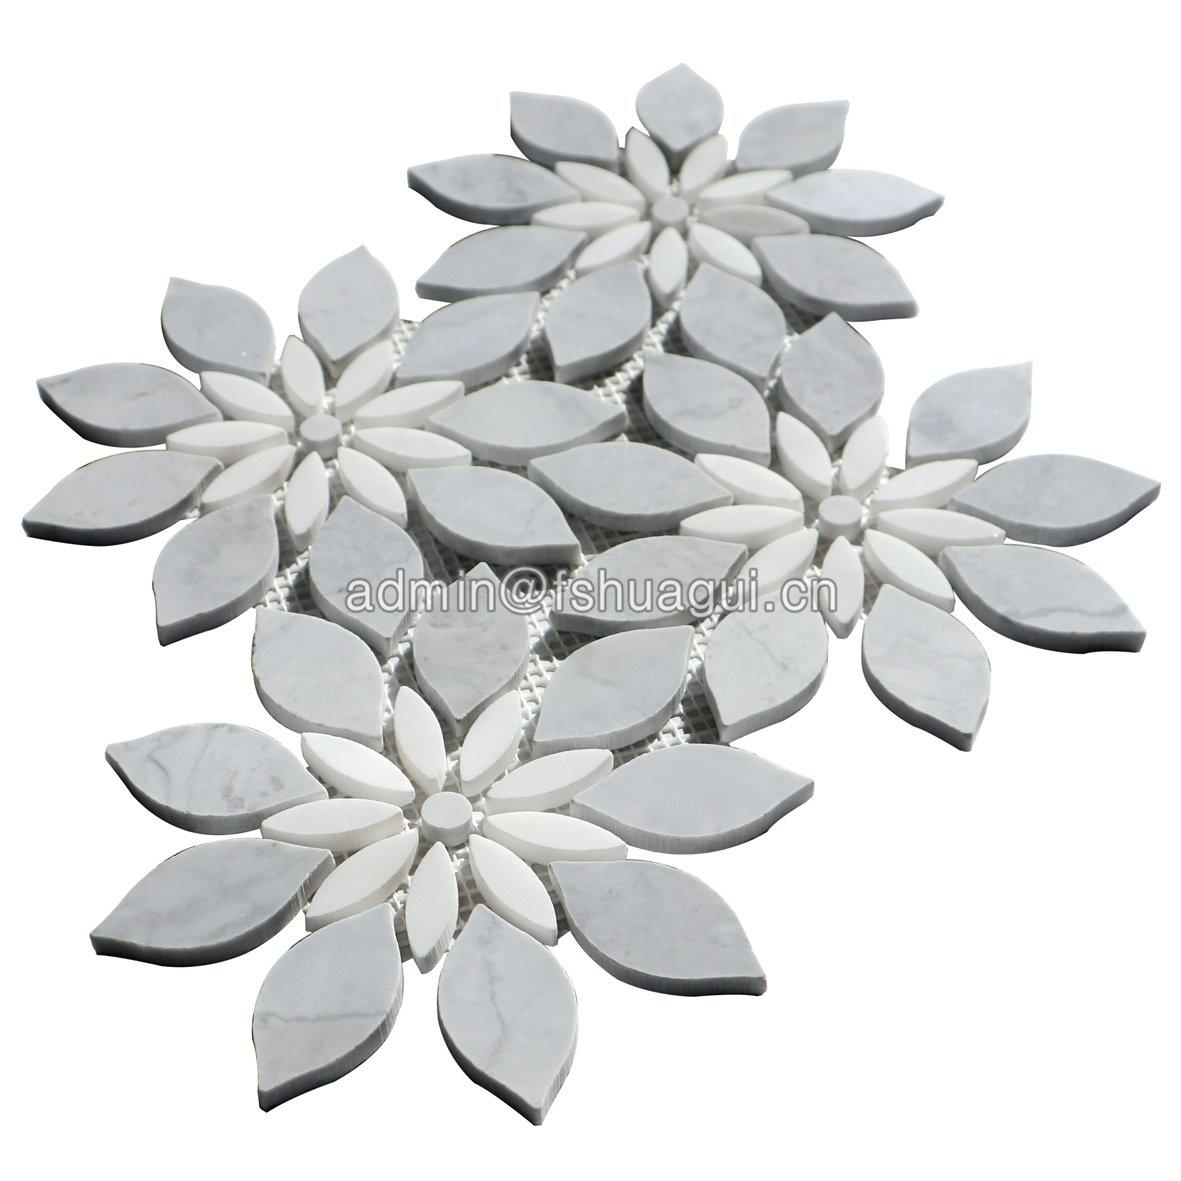 Exquisite flower pattern art design marble stone mosaic